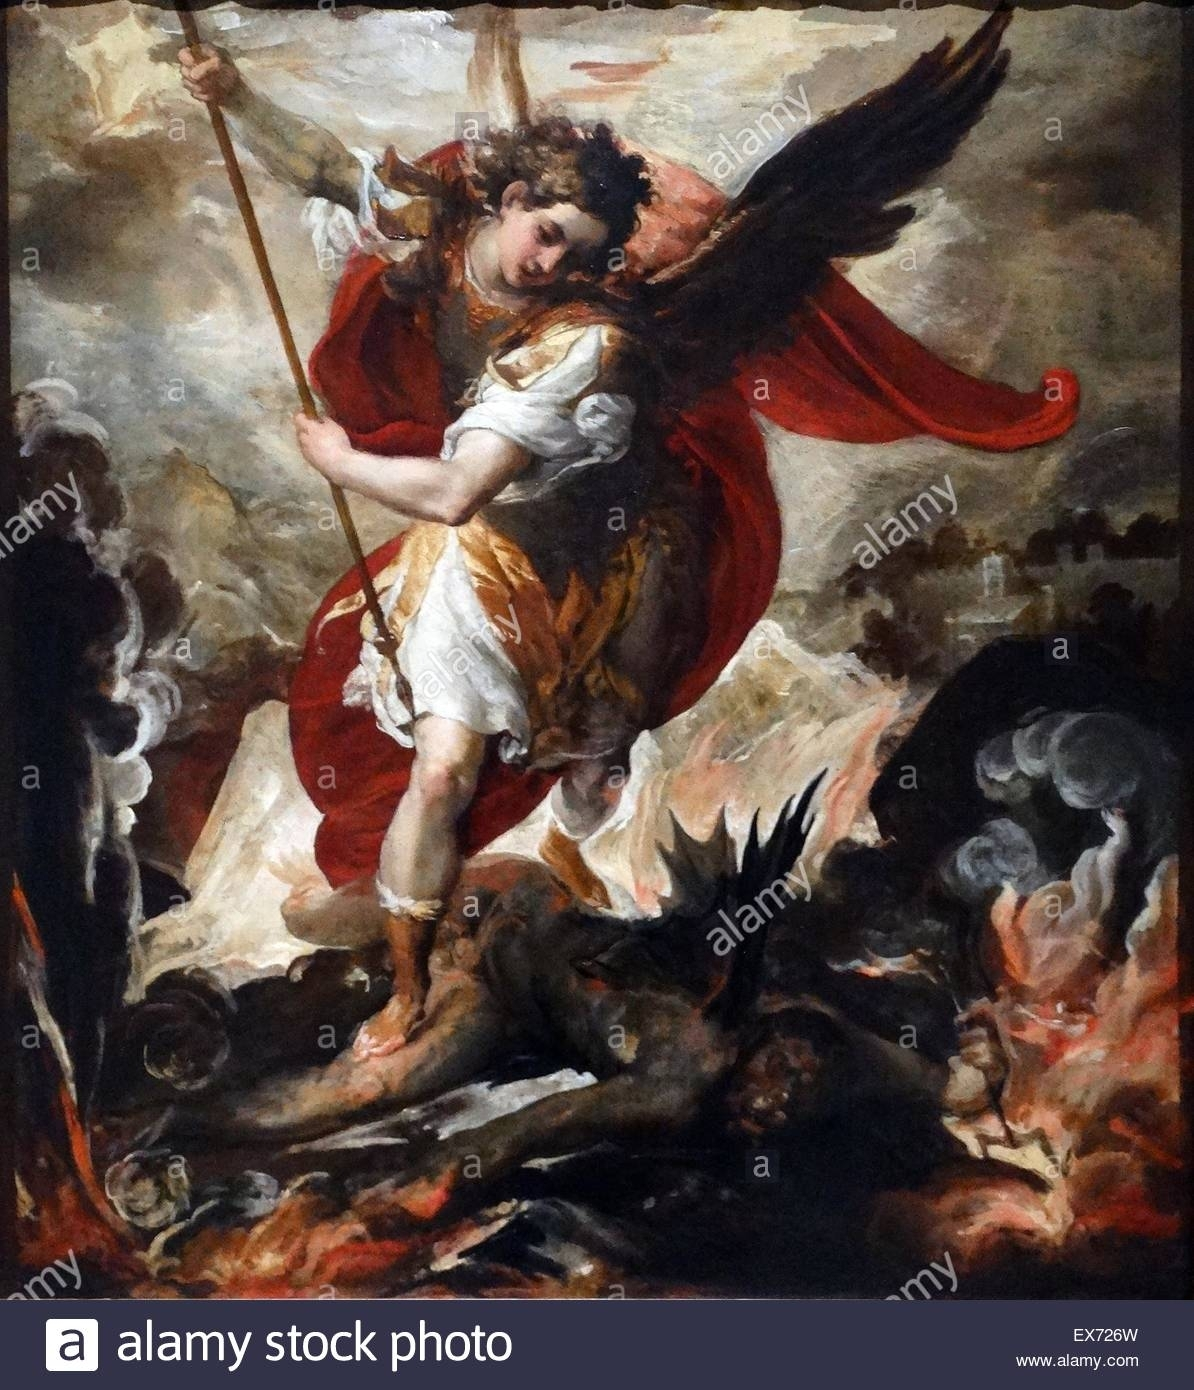 saint michael the archangel defeats lucifer, 1656 francesco maffei